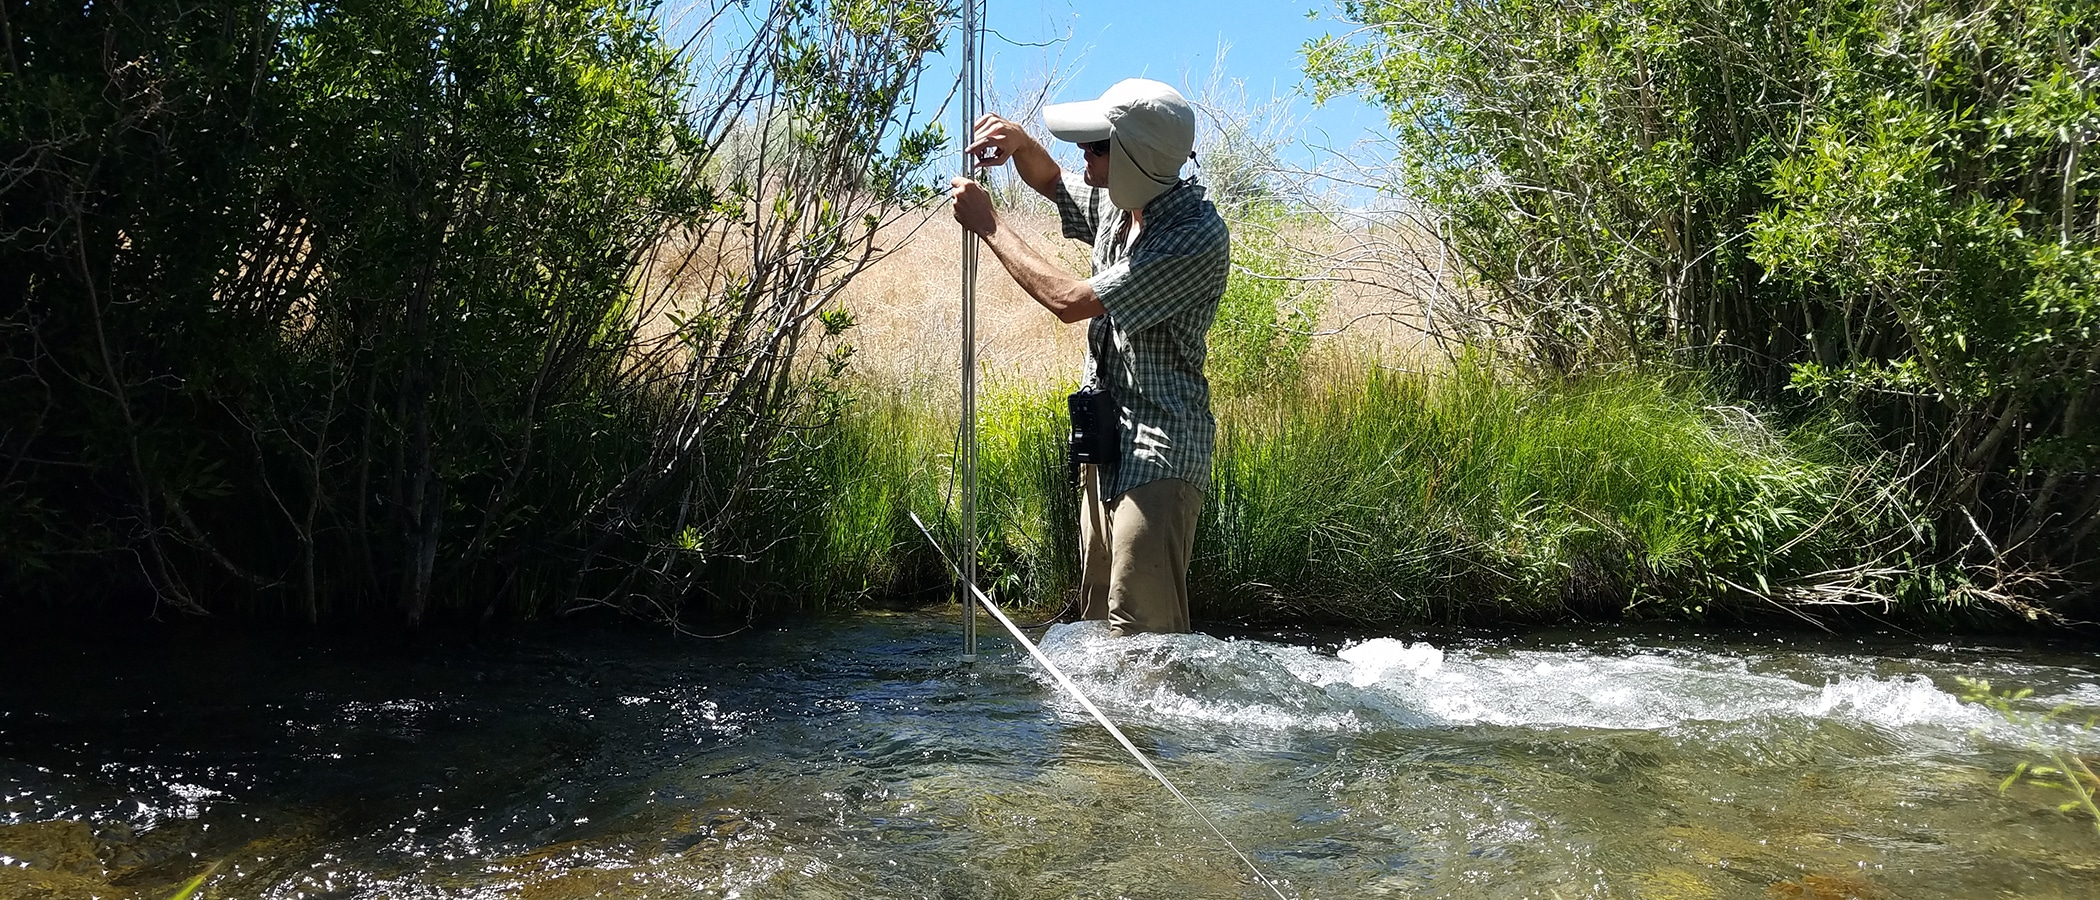 Field technician stands knee deep in a stream with a tall instrument that he is holding vertically in the stream with a long measuring tape going from across the stream bank, and there are green grasses and willows and rushing water.